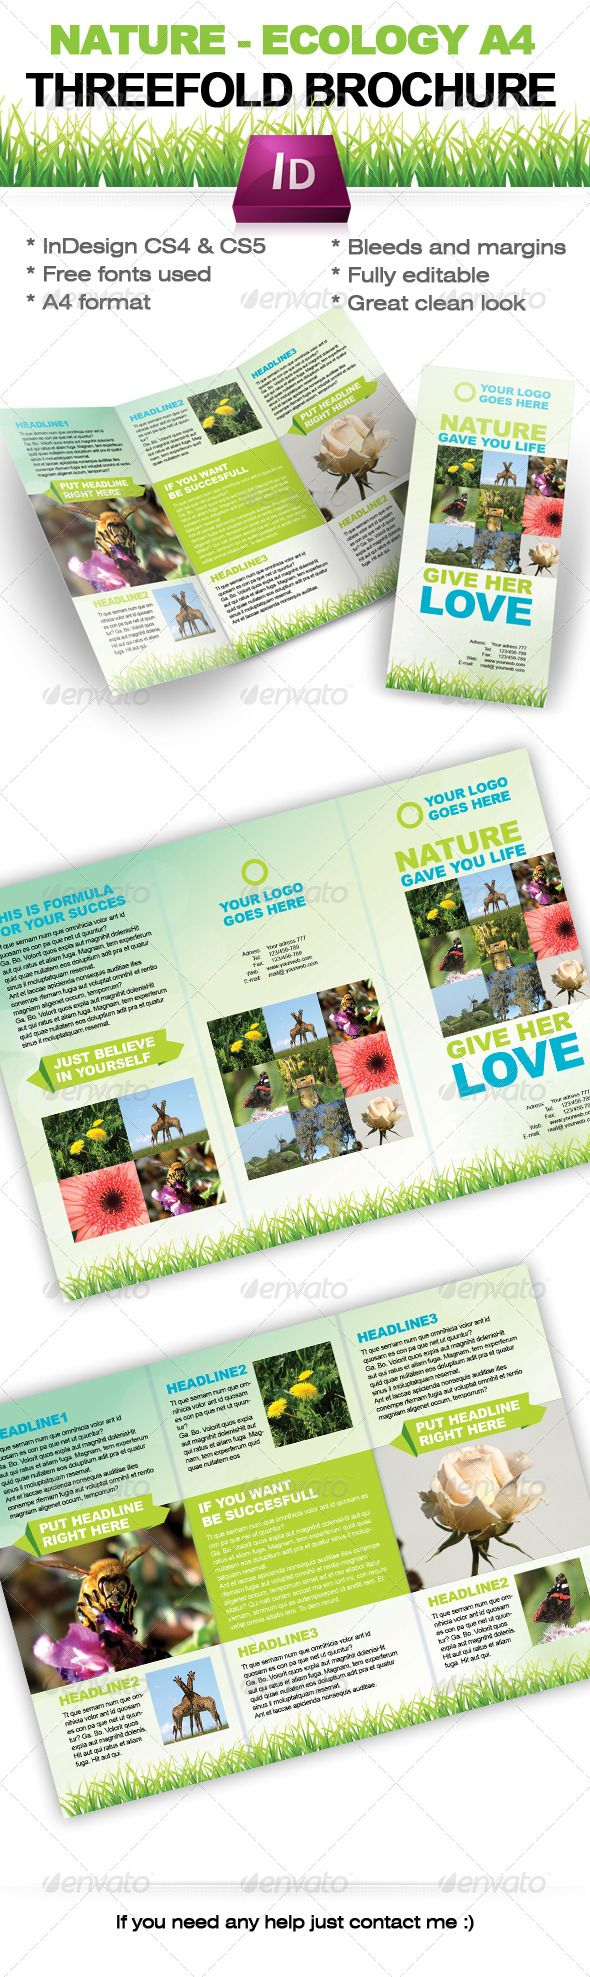 98 best images about print templates on pinterest print for Free indesign brochure templates cs5